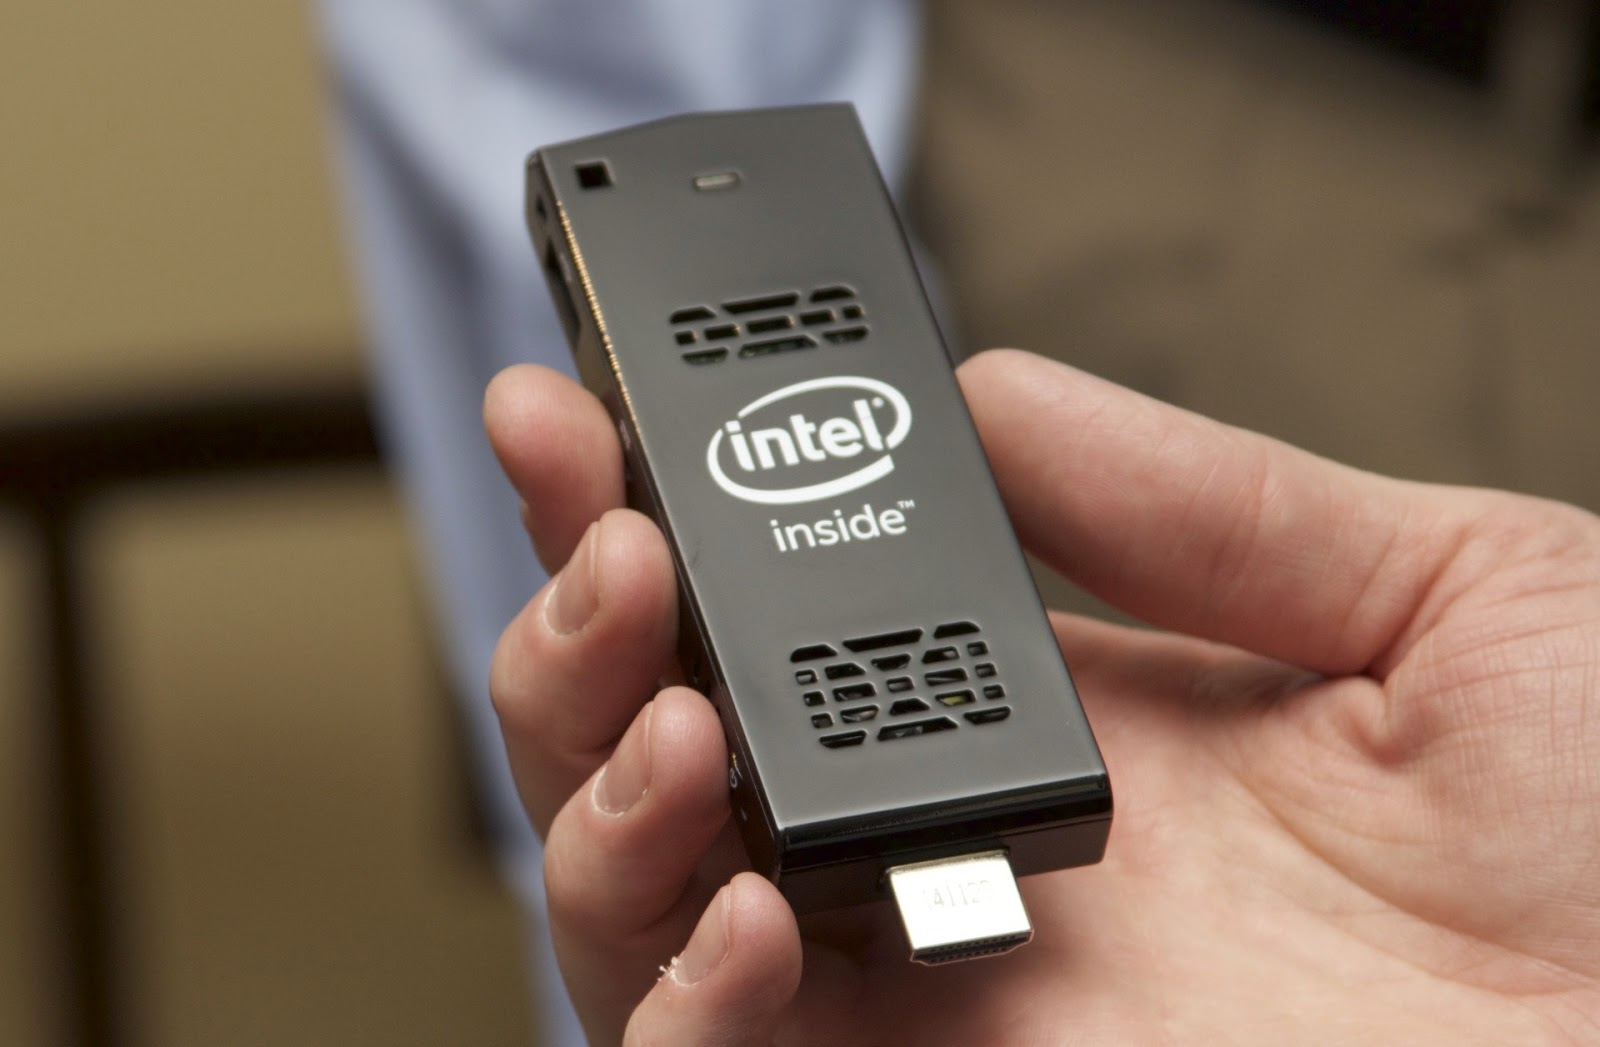 Intel Introduces New HDMI Dongle USB Equipped With Windows 8.1 and Linux PC